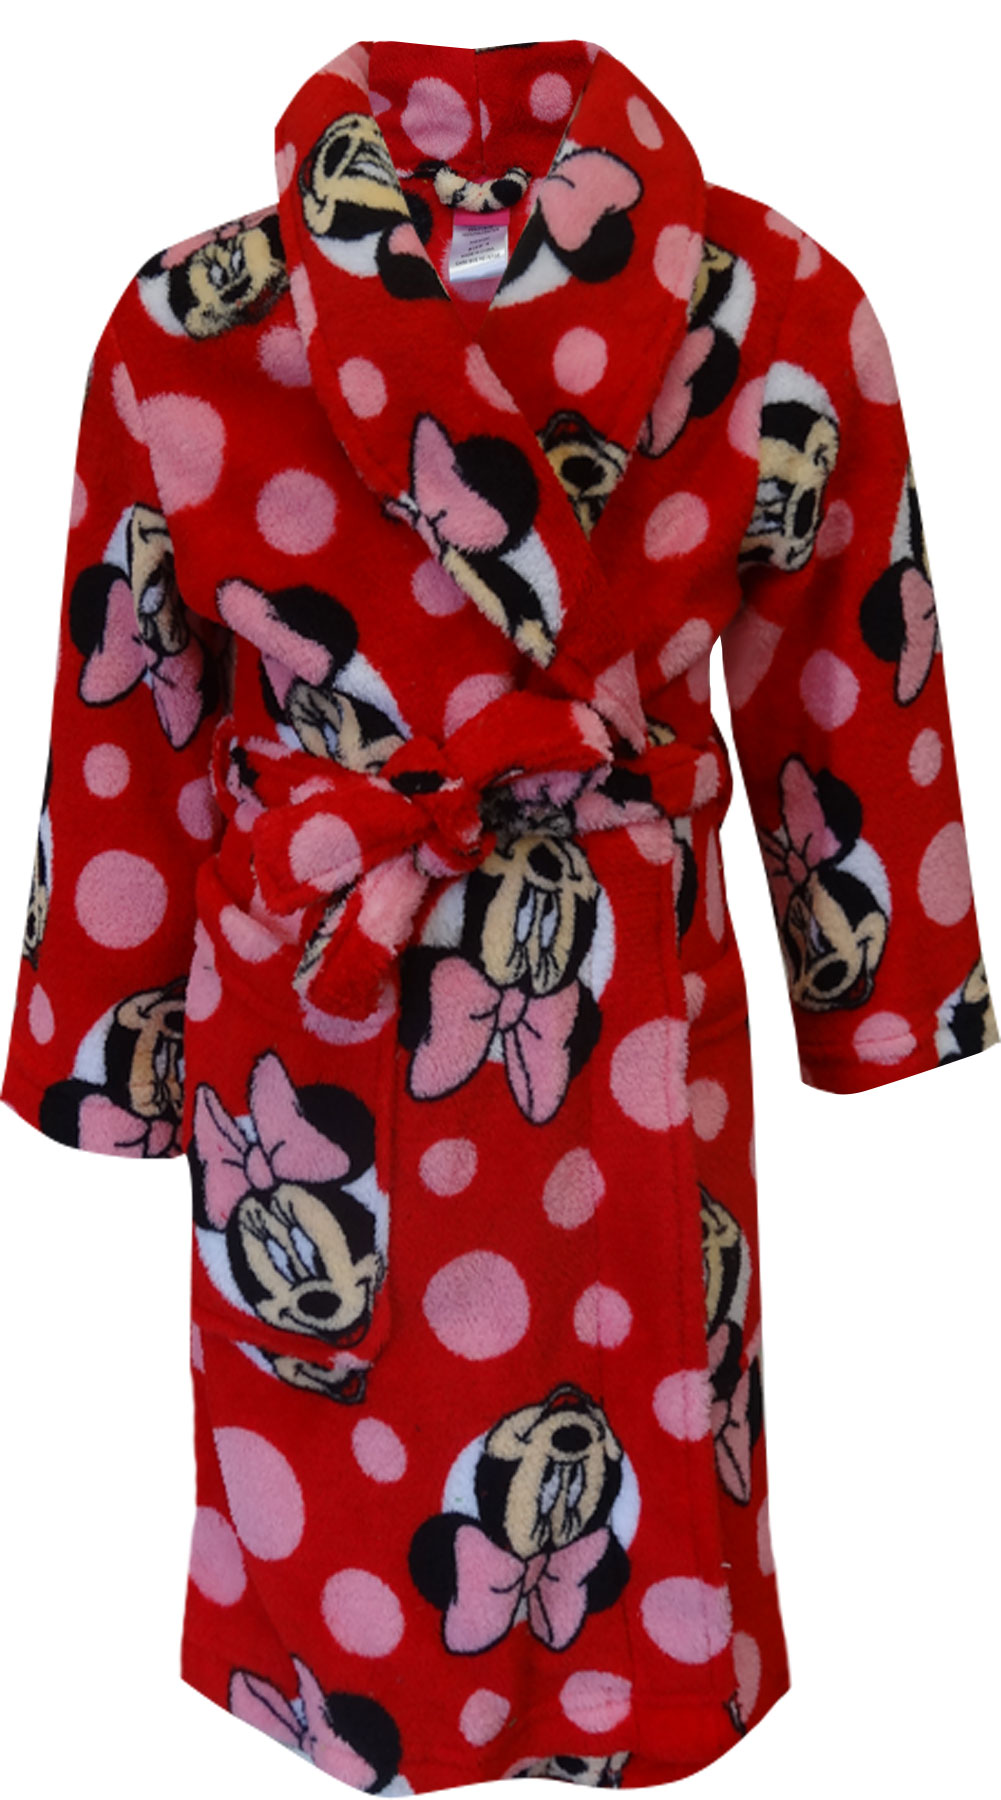 DISNEY Girls dressing gown MINNIE MOUSE Red luxury soft fleece Age 3 4